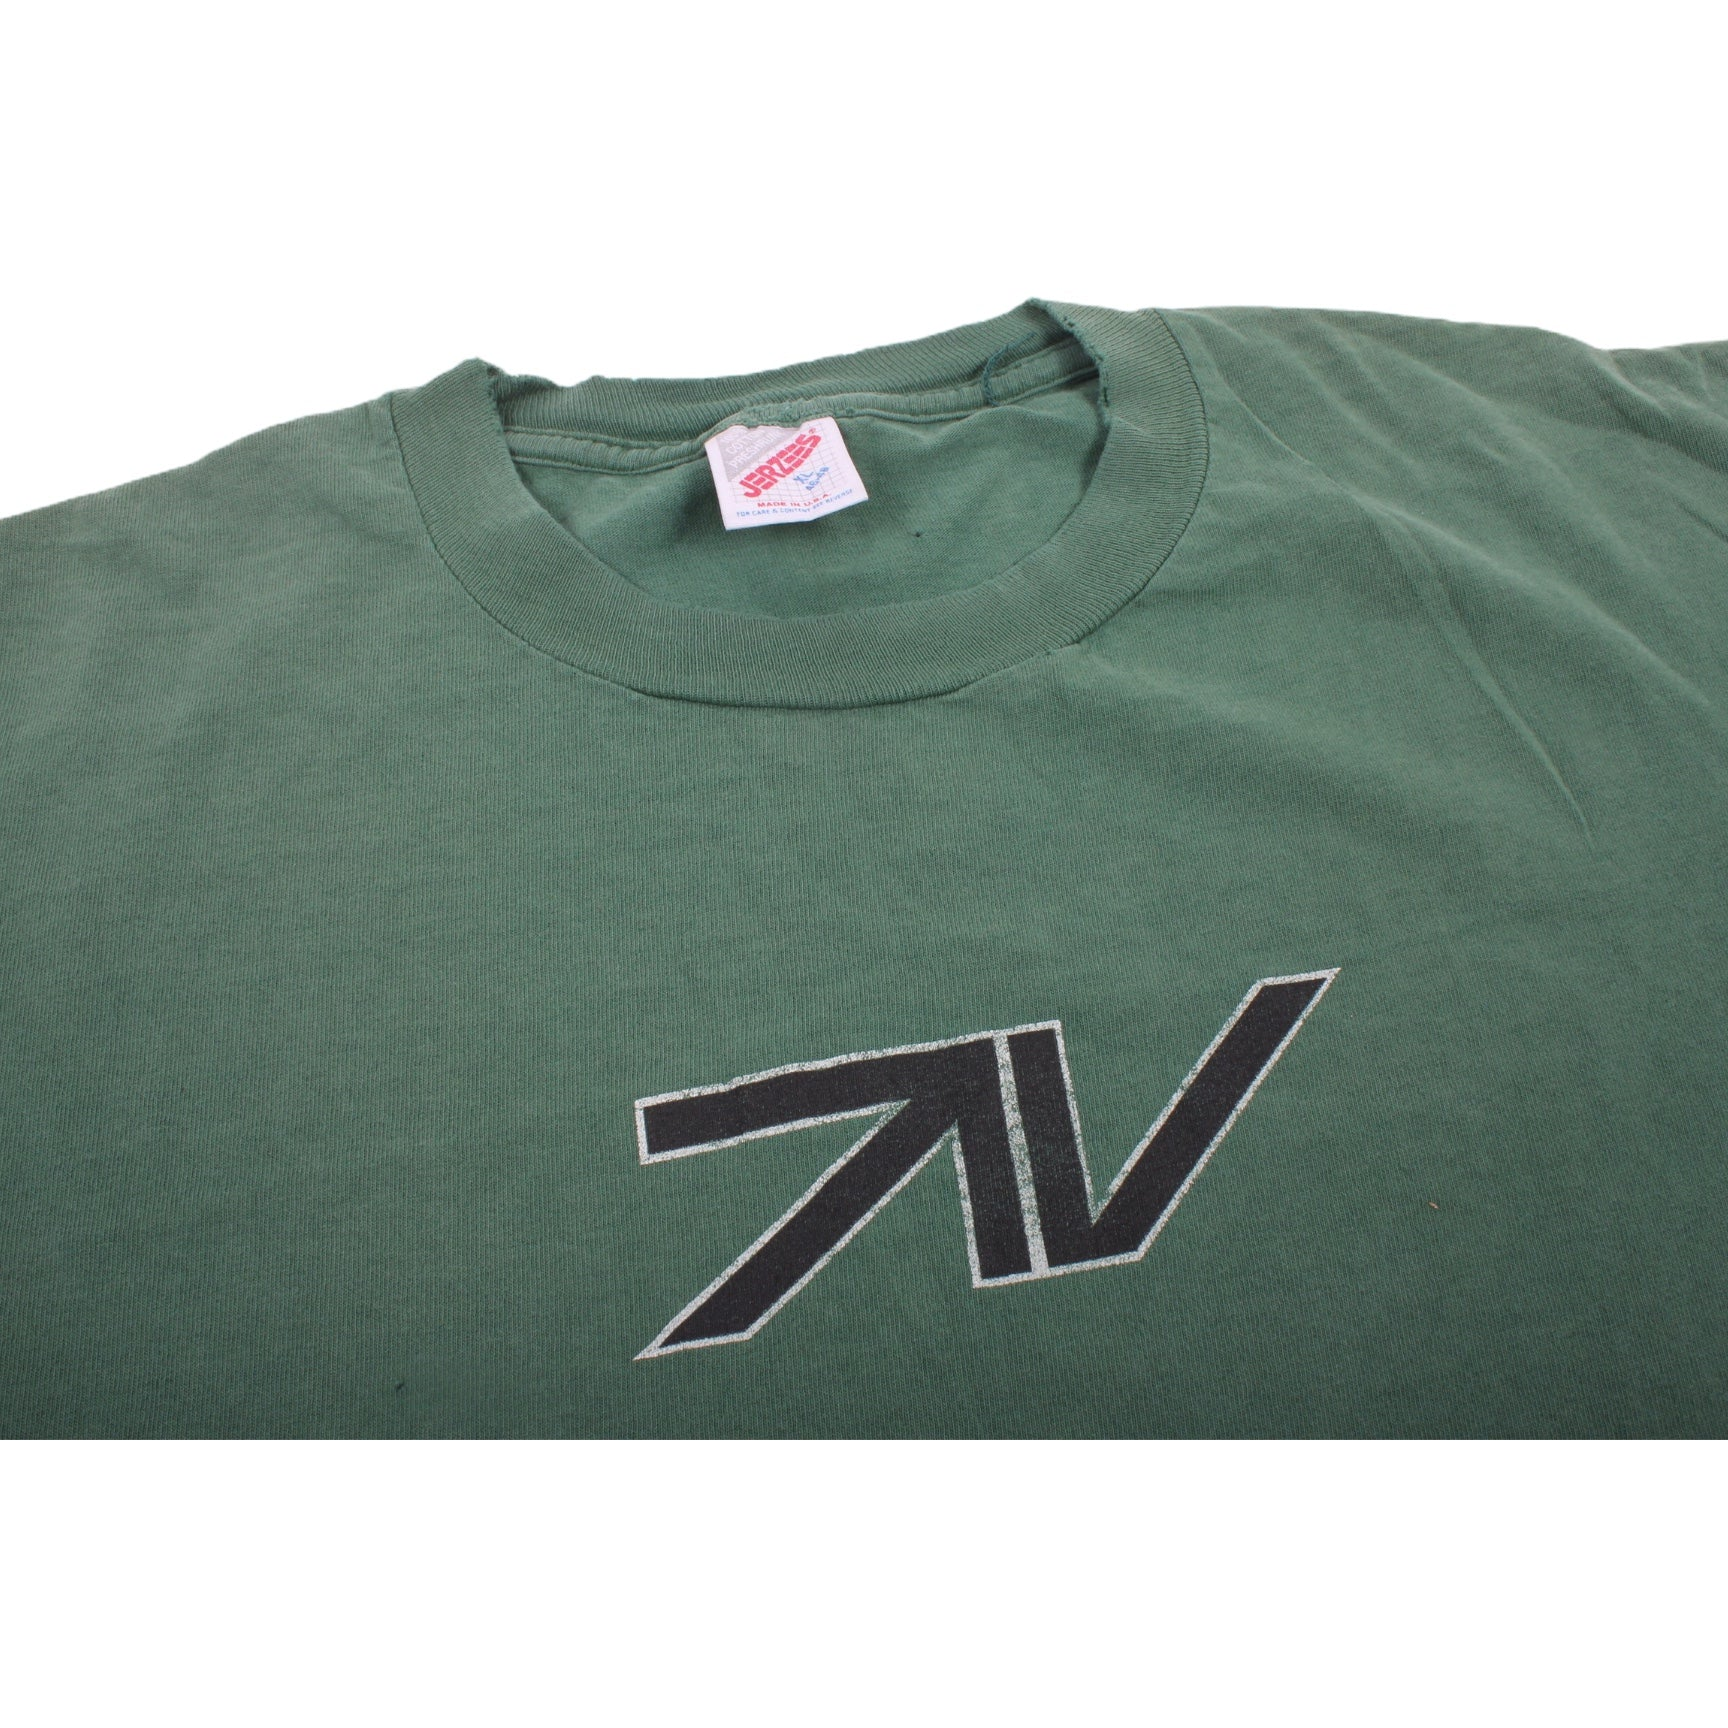 Overripe TV Skateboards Tee Shirt Green XL (1991)